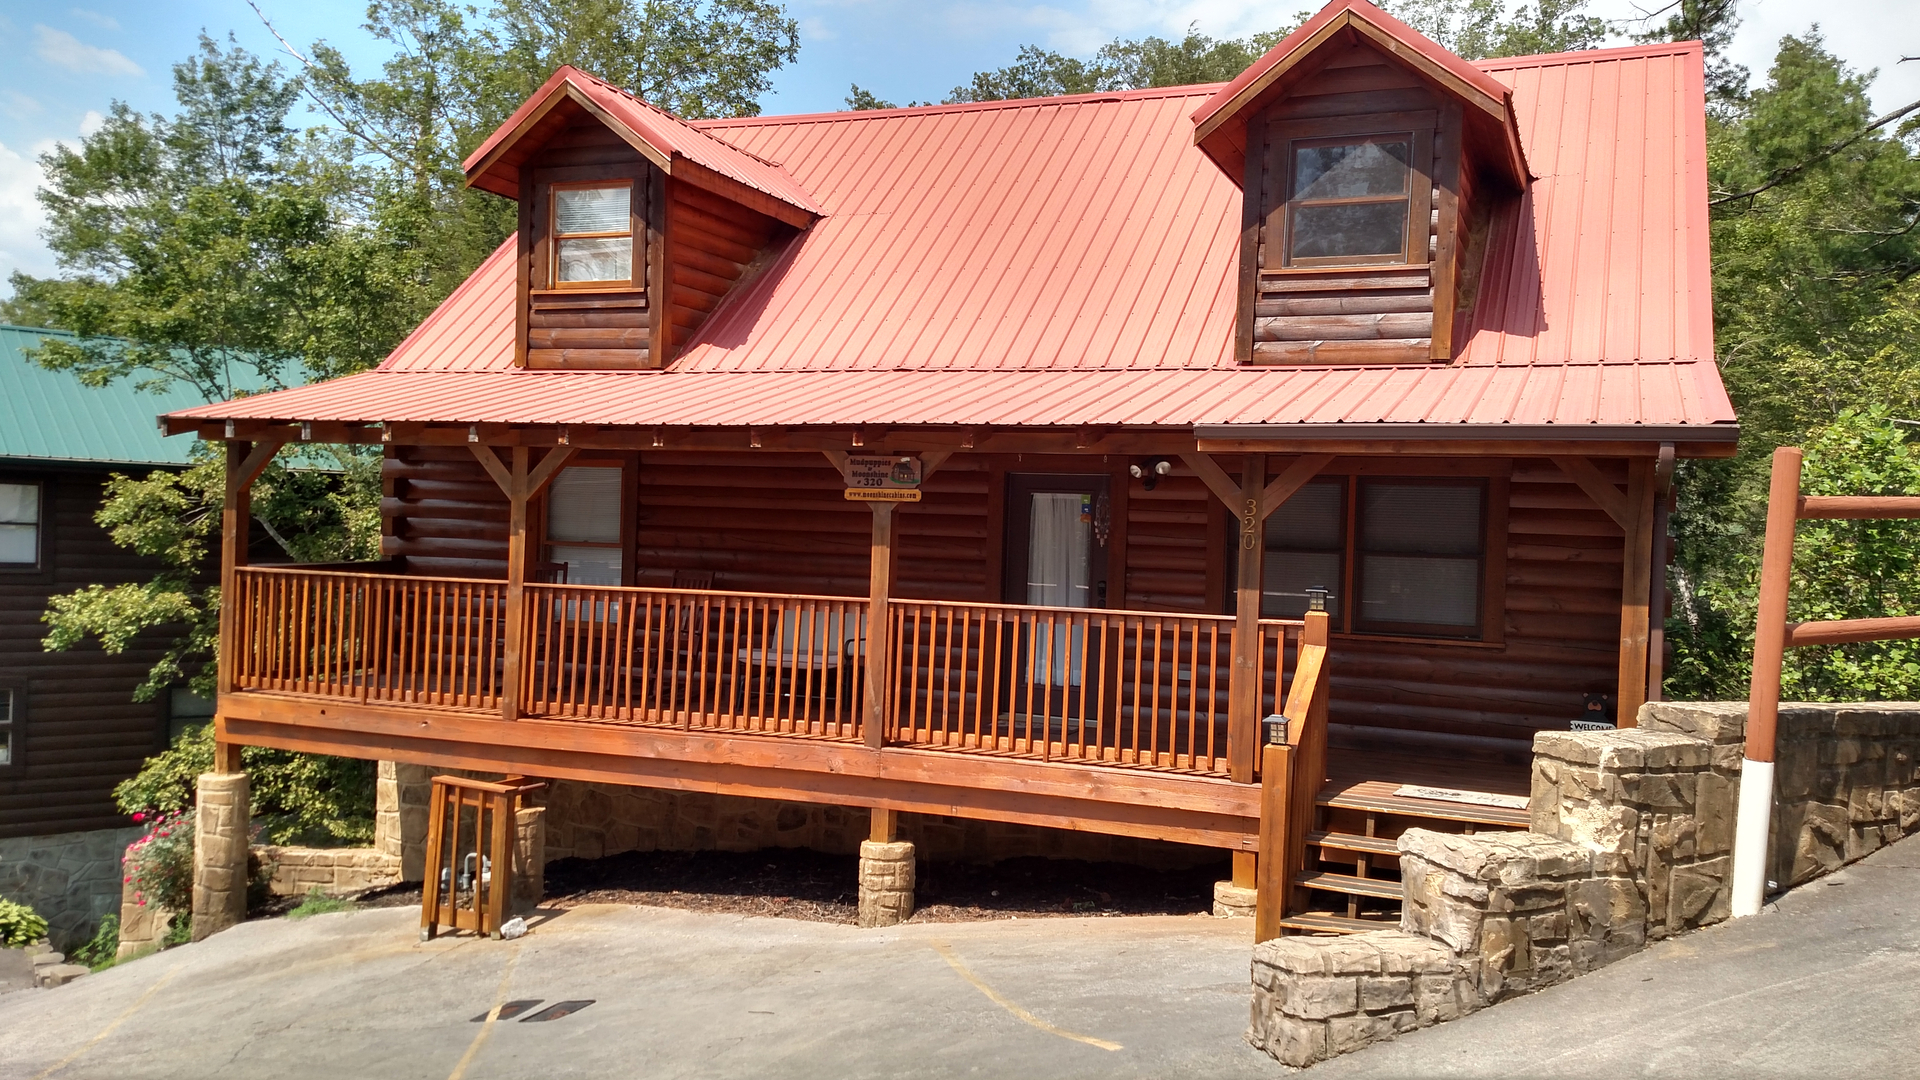 com home us near image cabin of gallery chattanooga property point tn hotel vacation pot cabins this booking